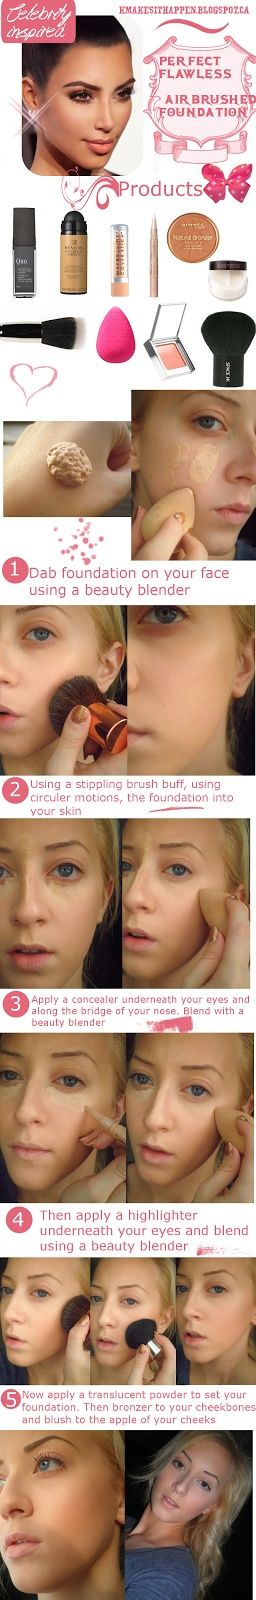 15 Makeup Tips You Must Love                                                                                                                                                                                 More